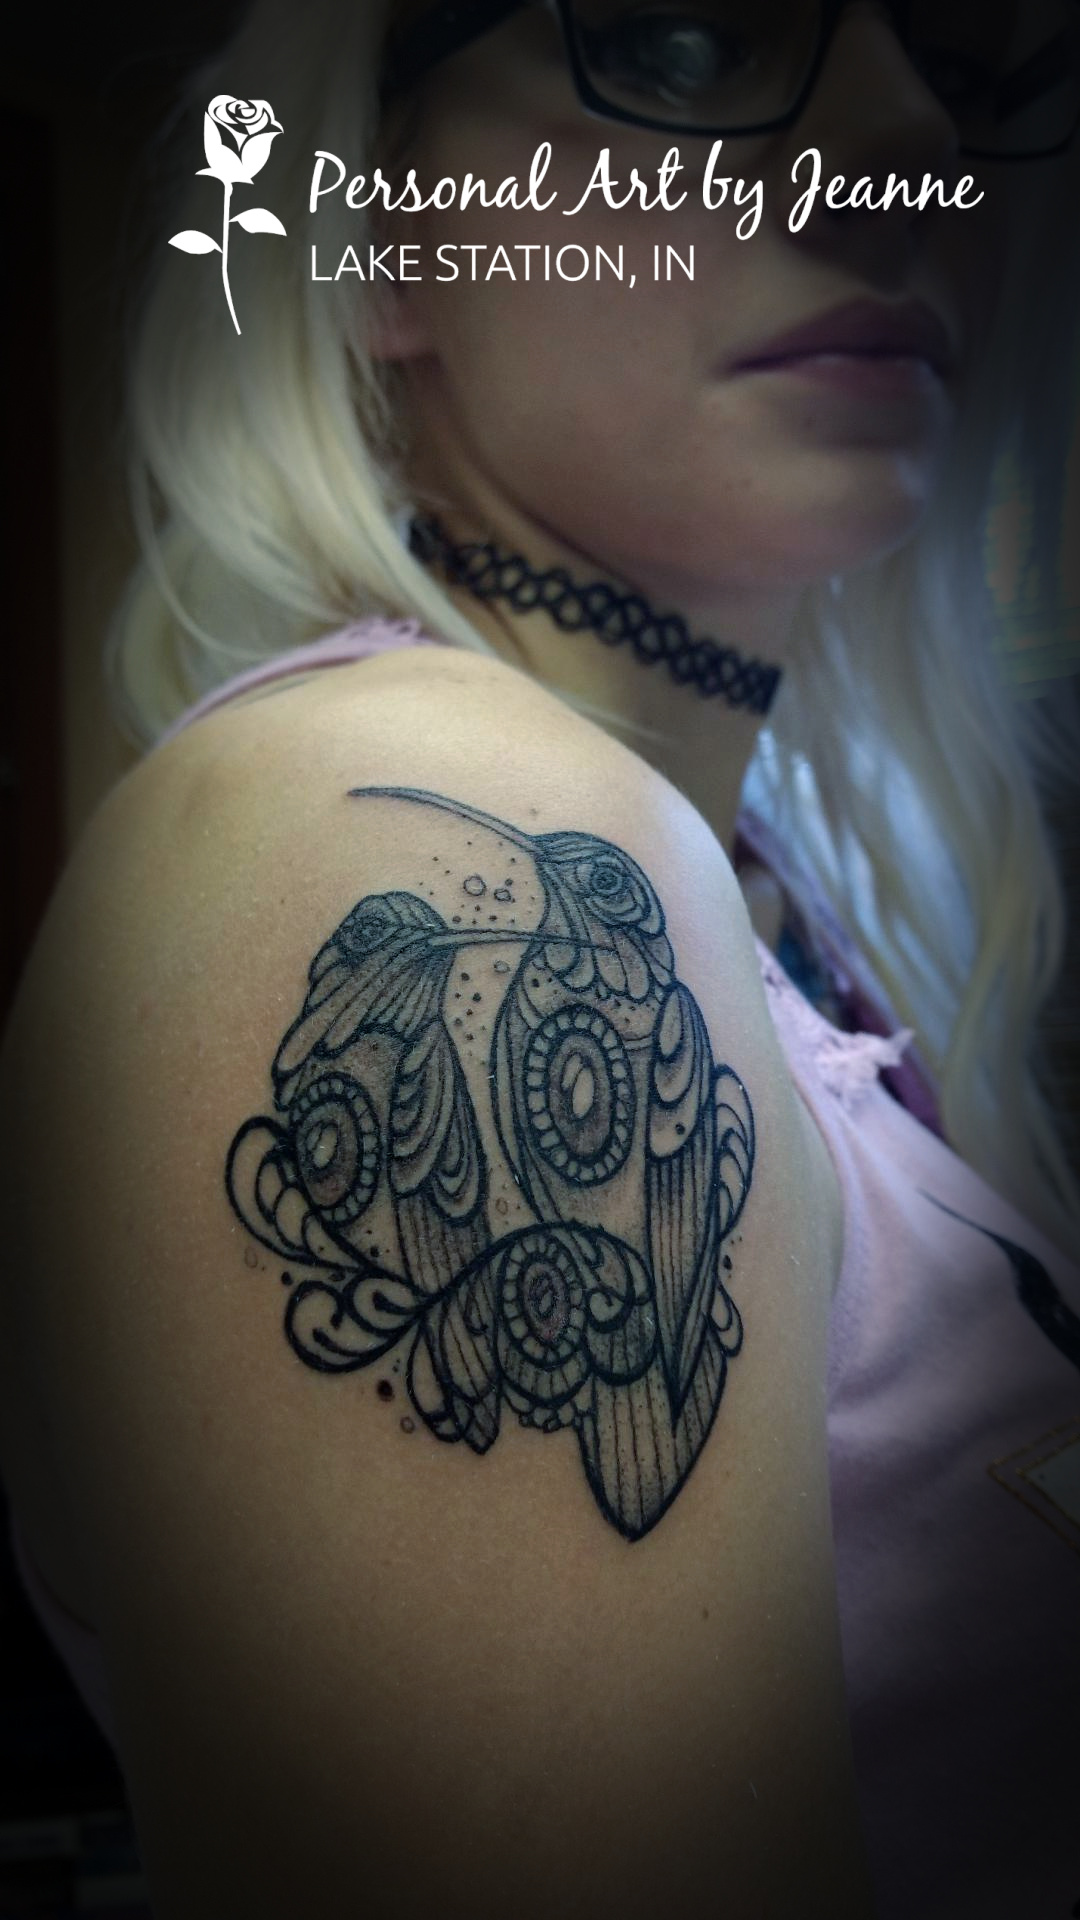 black and gray, henna-styled birds - tattooed by Jeanne at PersonalA